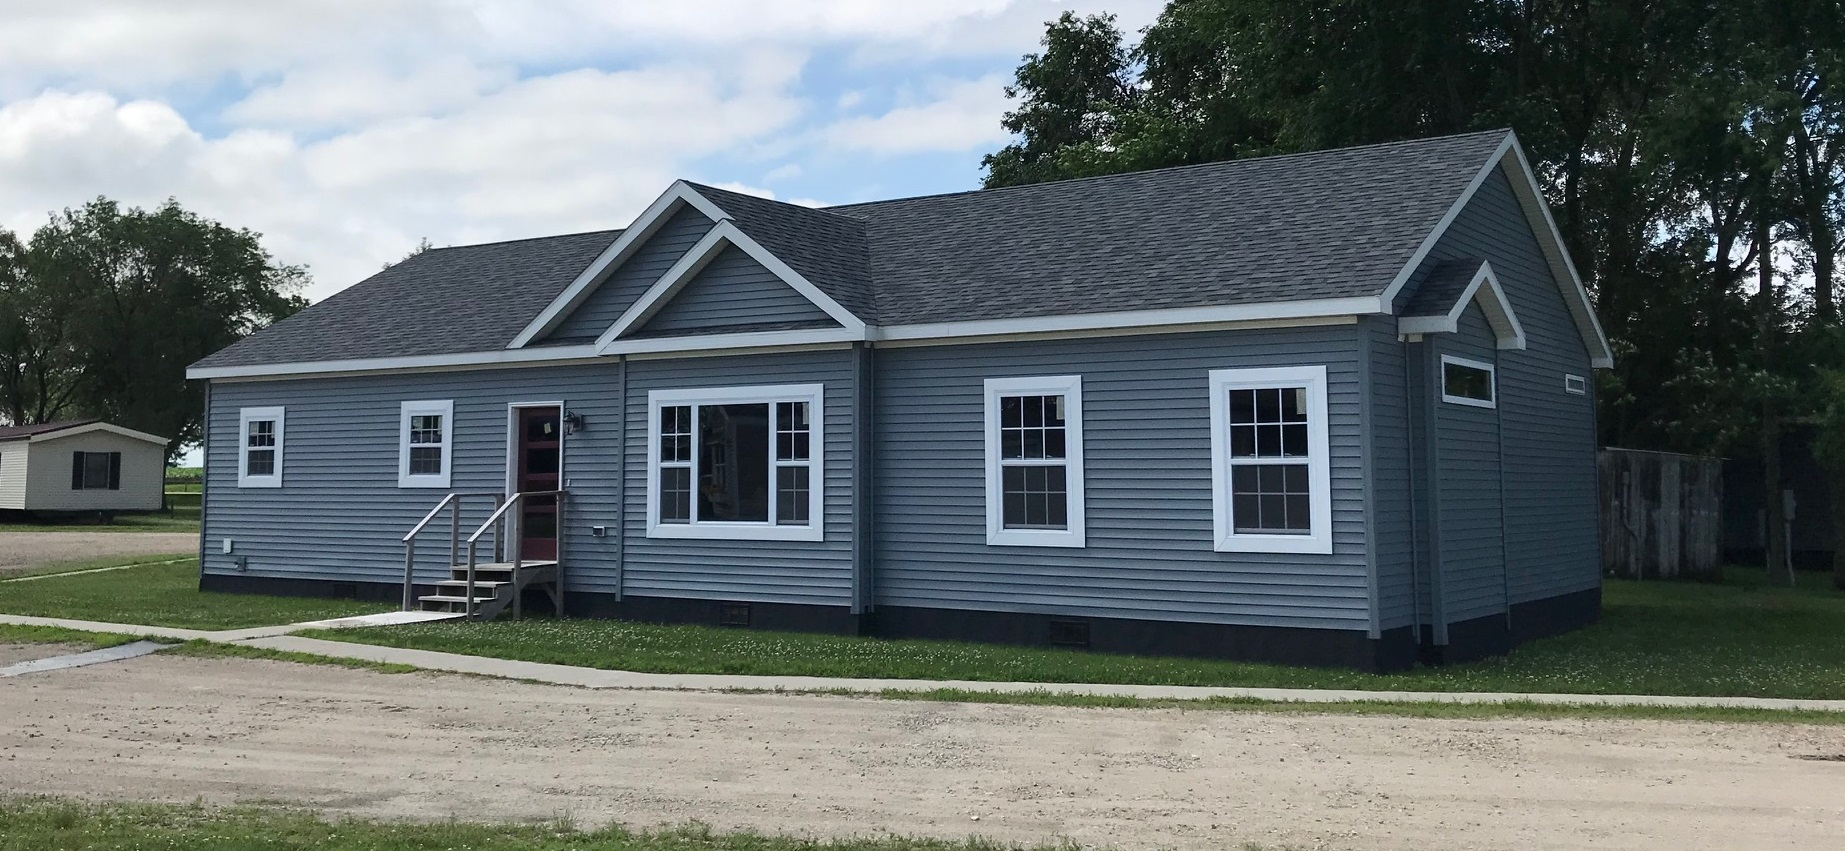 if display 5 - rochester homes / modular / 1,800 FT.²